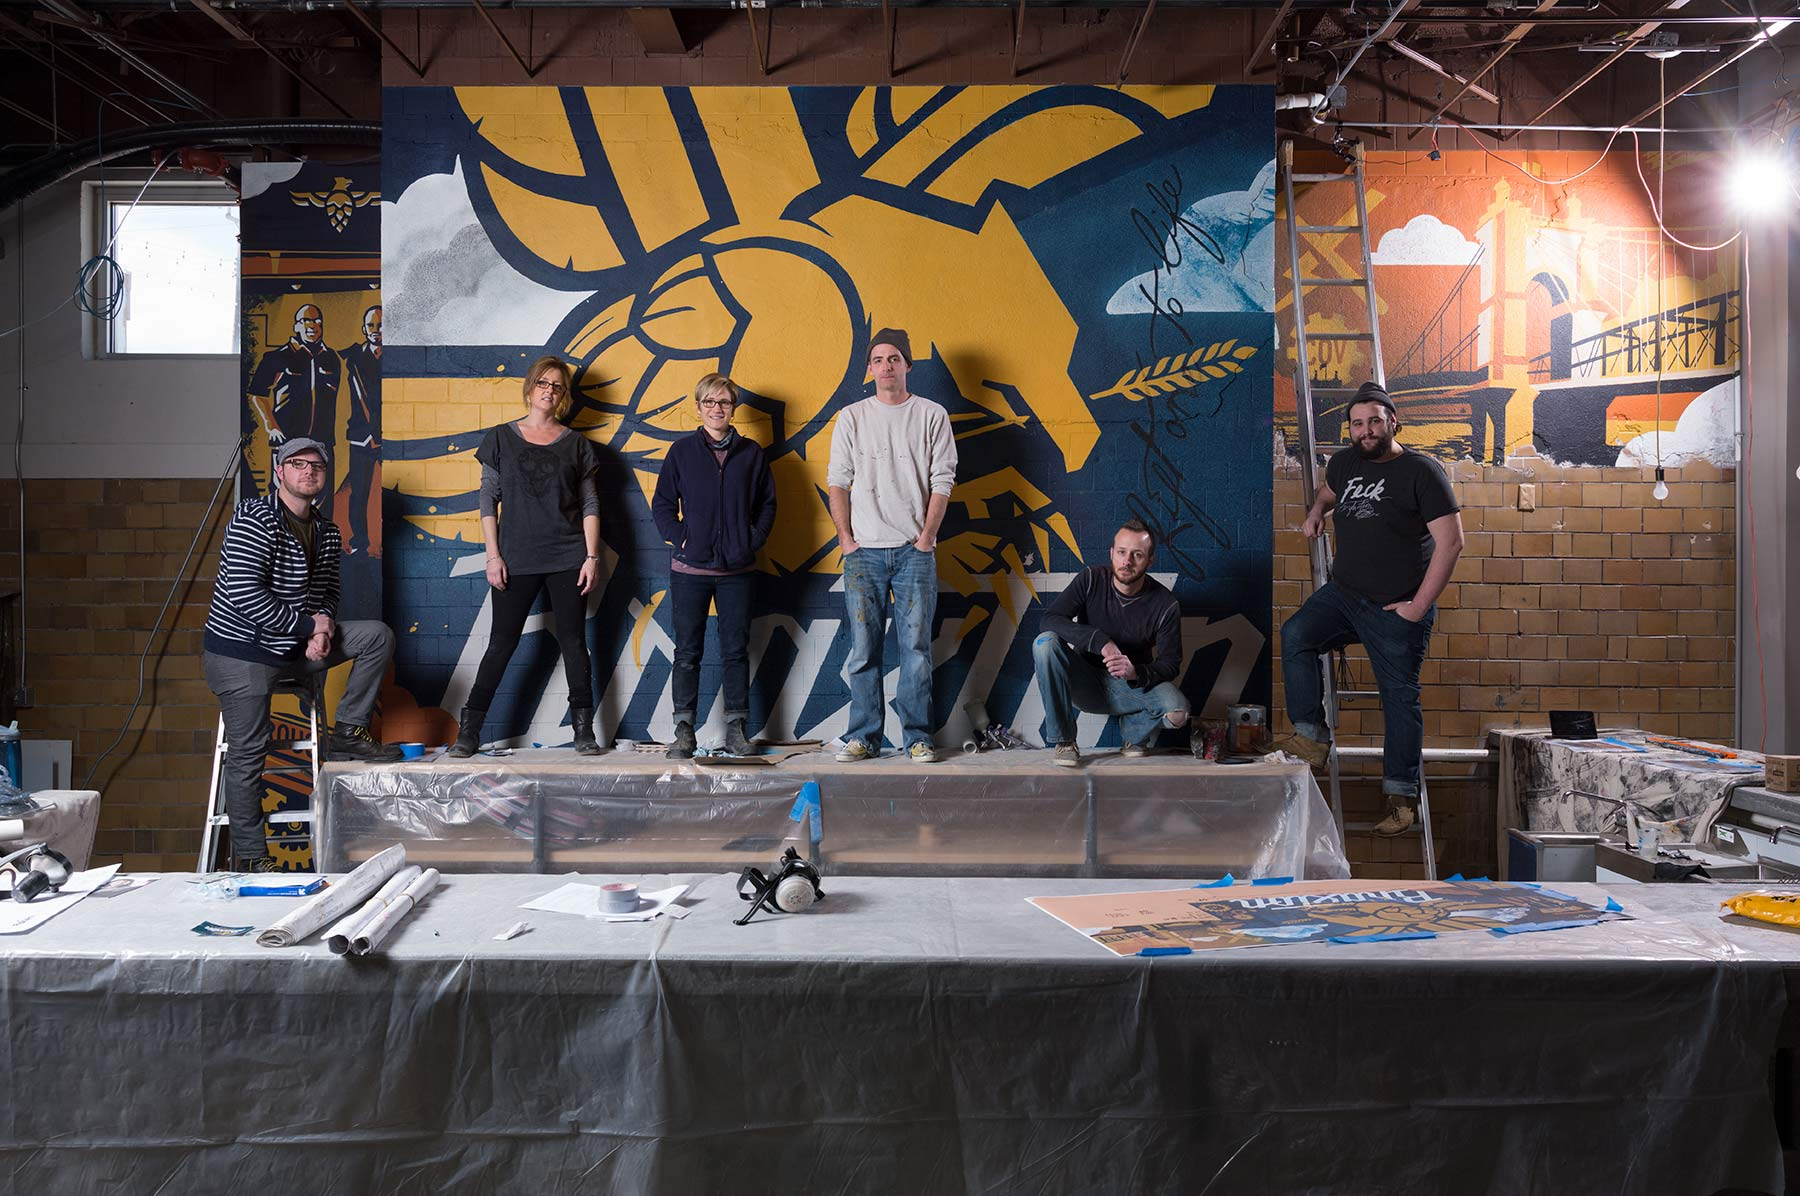 Six-young-adults-posed-in-front-of-a-wall-with-a-large-bird-logo-in-their-art-studio